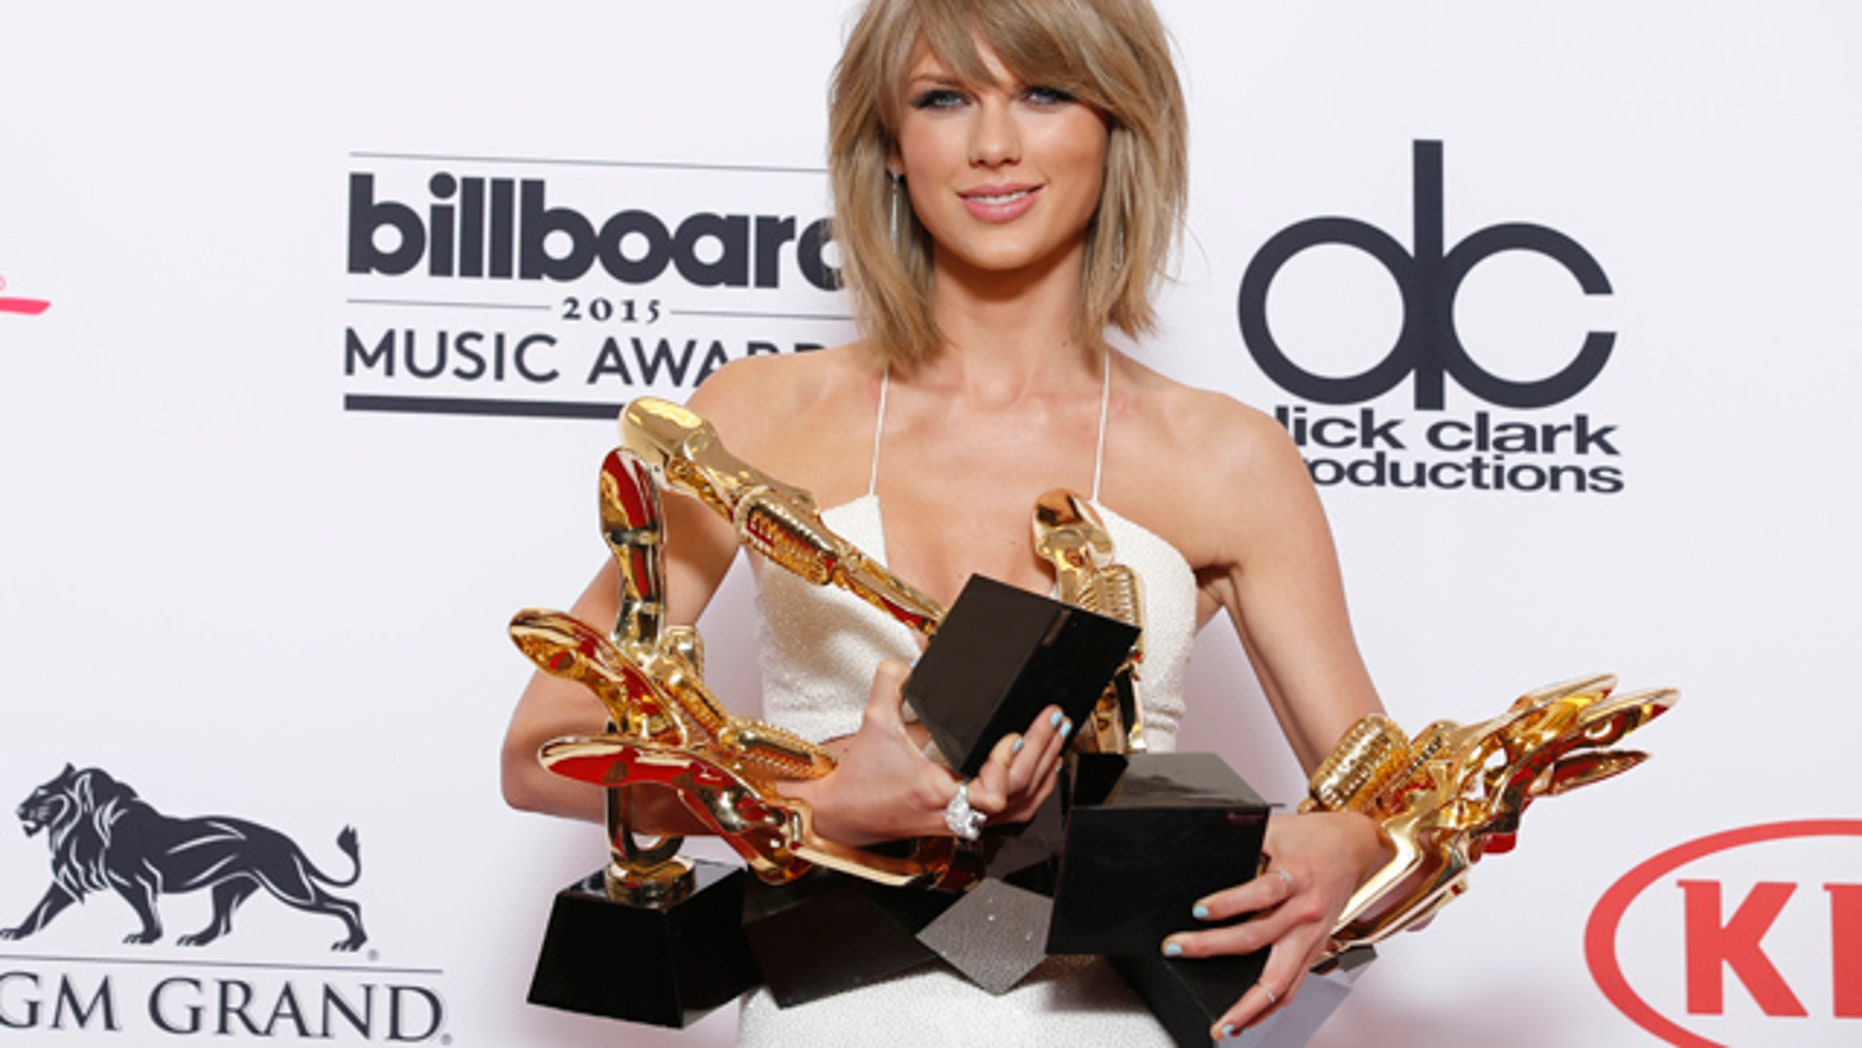 FILE - In a May 17, 2015 file photo, Taylor Swift poses in the press room with the awards for top Billboard 200 album for '1989', top female artist, chart achievement, top artist, top Billboard 200 artist, top hot 100 artist, top digital song artist, and top streaming song (video) for 'Shake It Off' at the Billboard Music Awards at the MGM Grand Garden Arena, in Las Vegas. (Photo by Eric Jamison/Invision/AP, File)